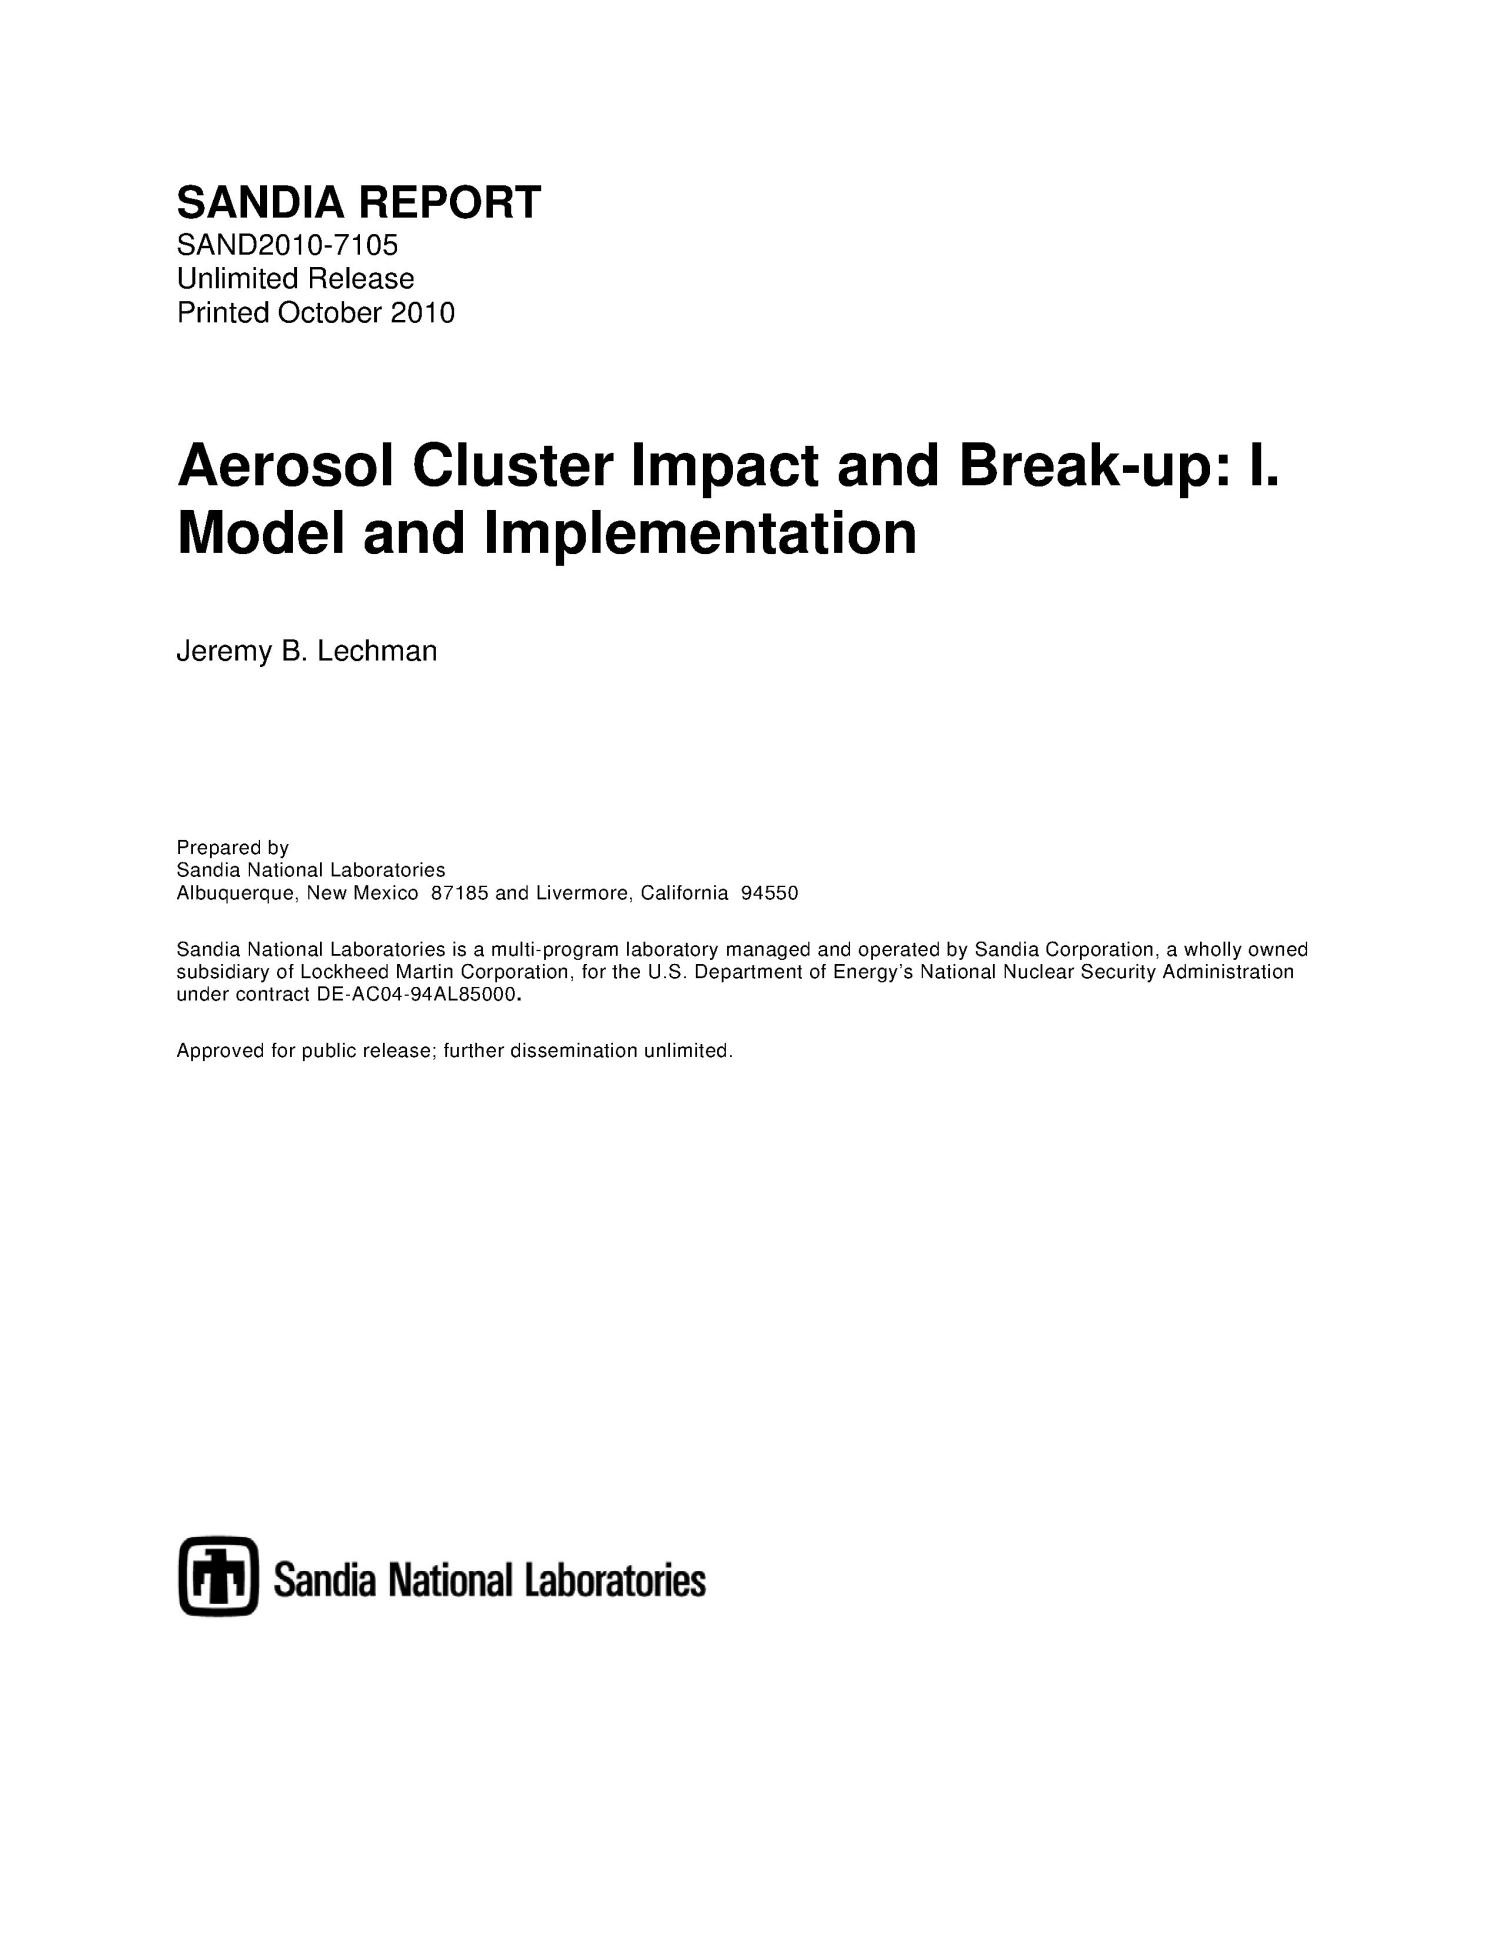 Aerosol cluster impact and break-up : model and implementation.                                                                                                      [Sequence #]: 1 of 19